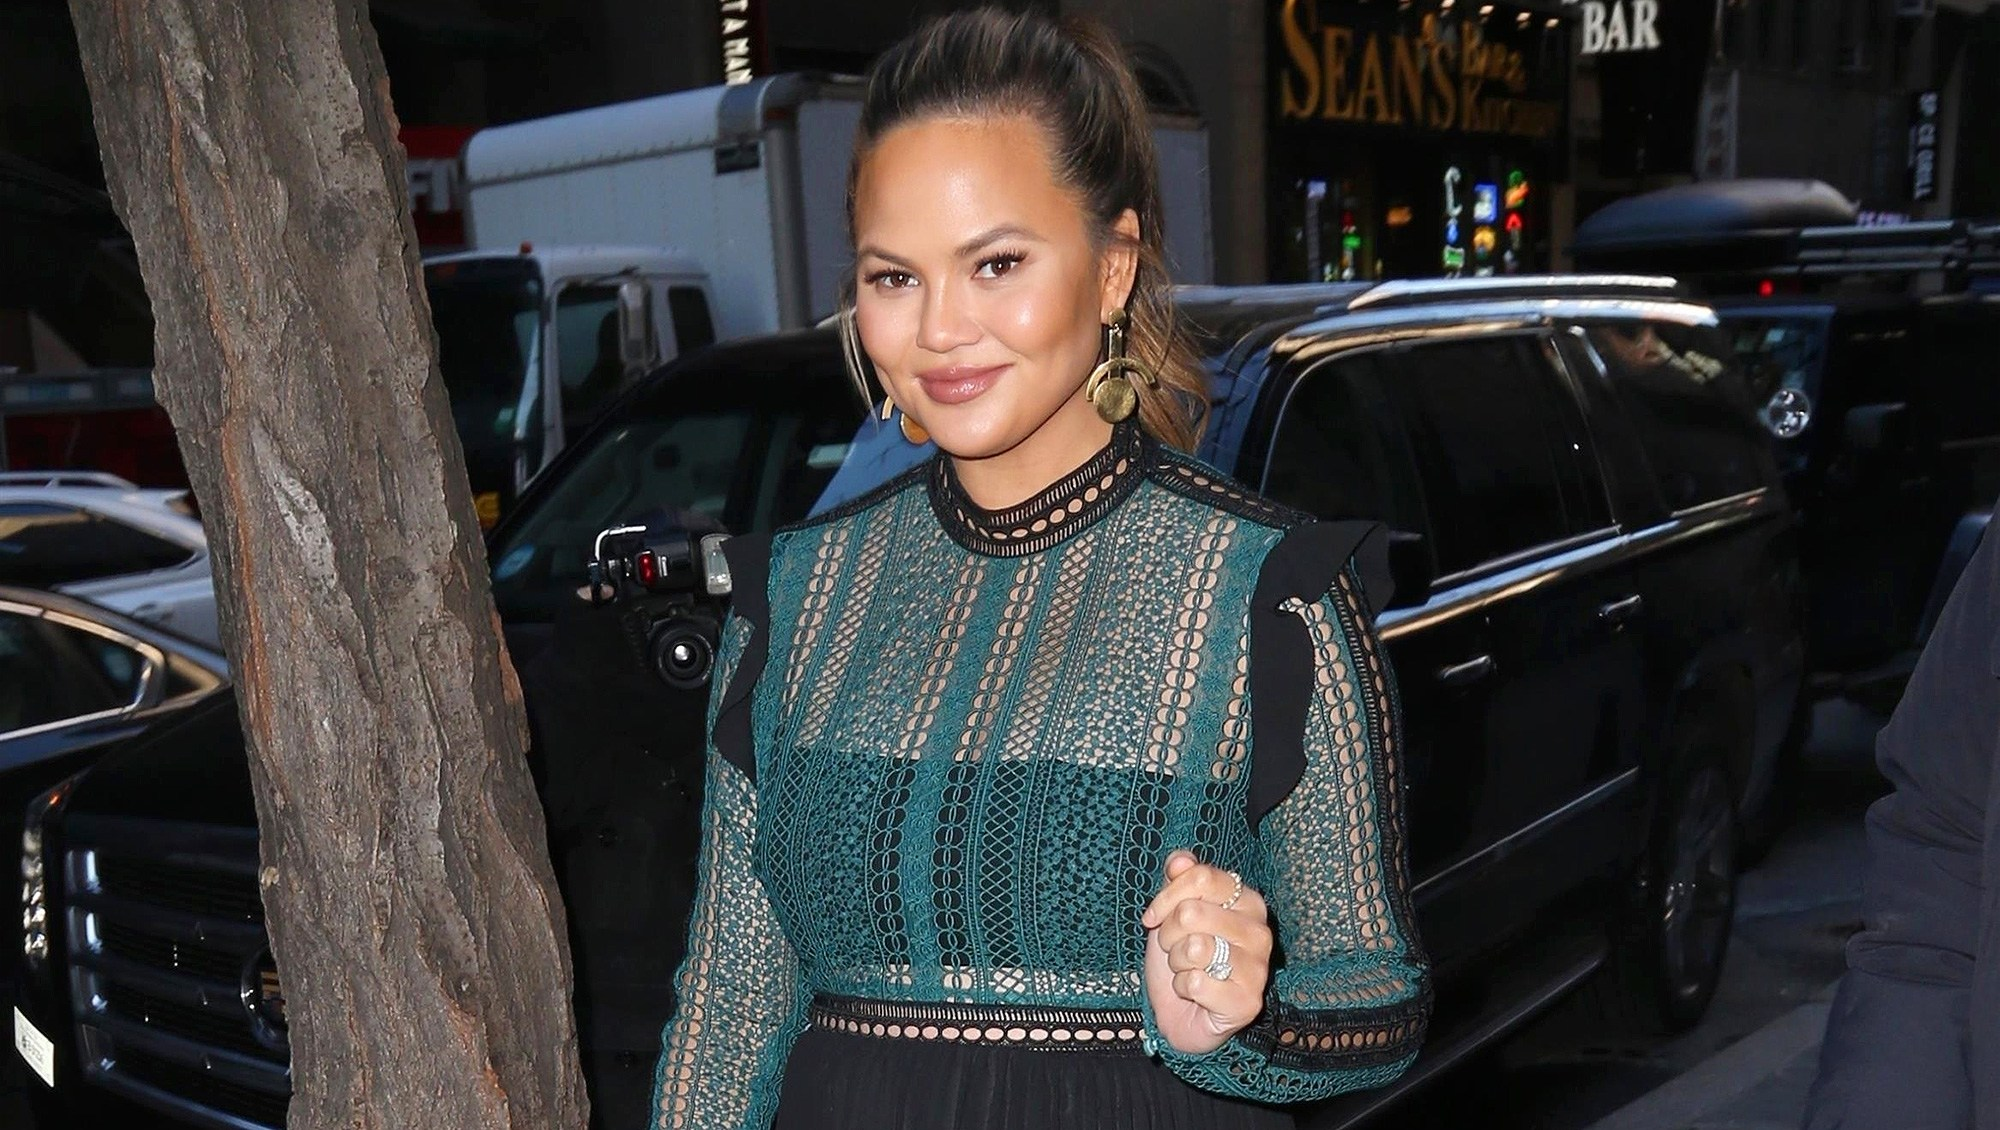 Chrissy Teigen, Pregnant, Sucking the Life From Me